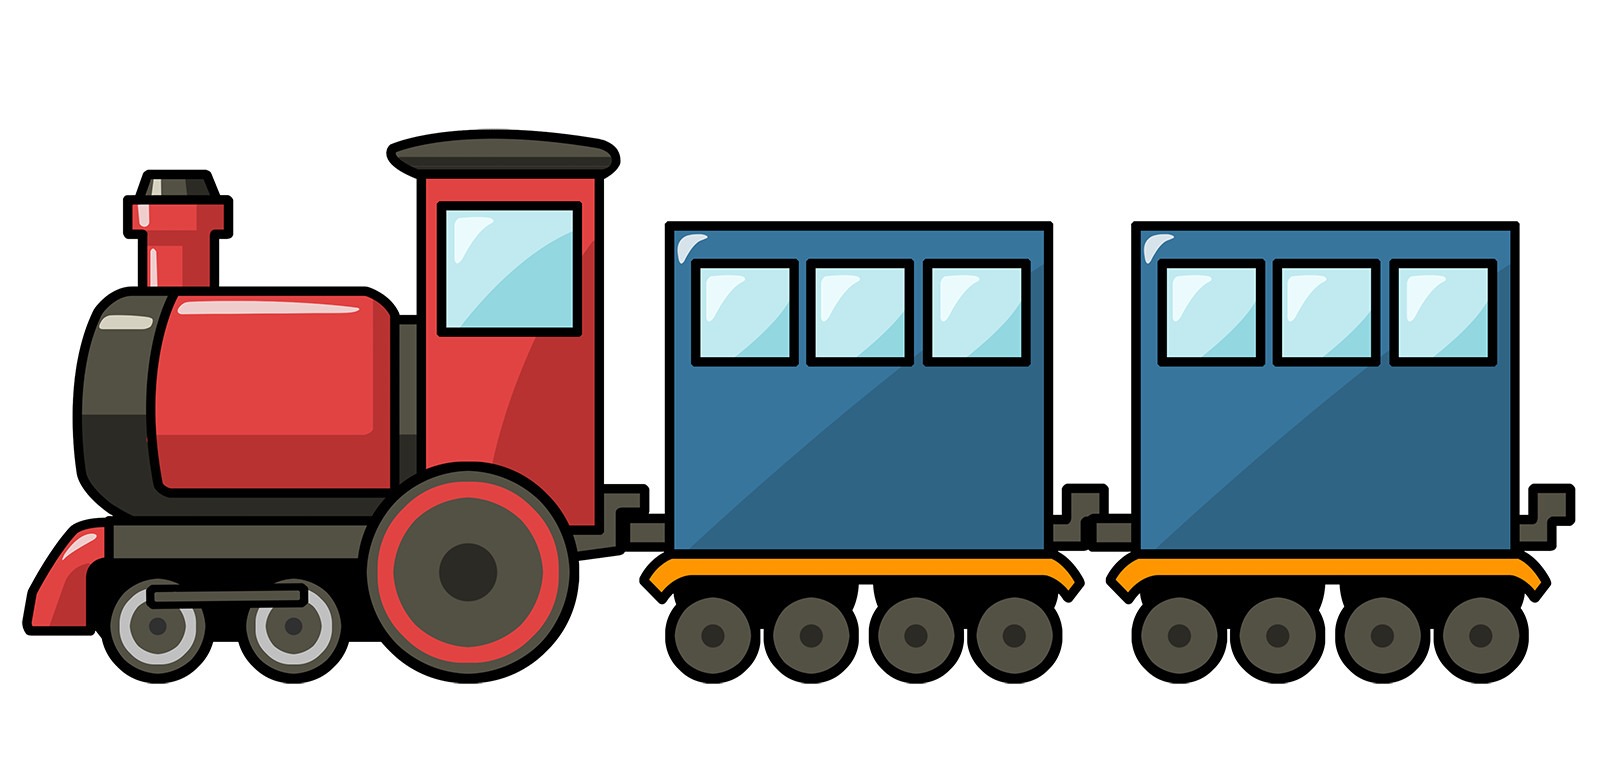 Engine clipart animated train. Cartoon free cute clip